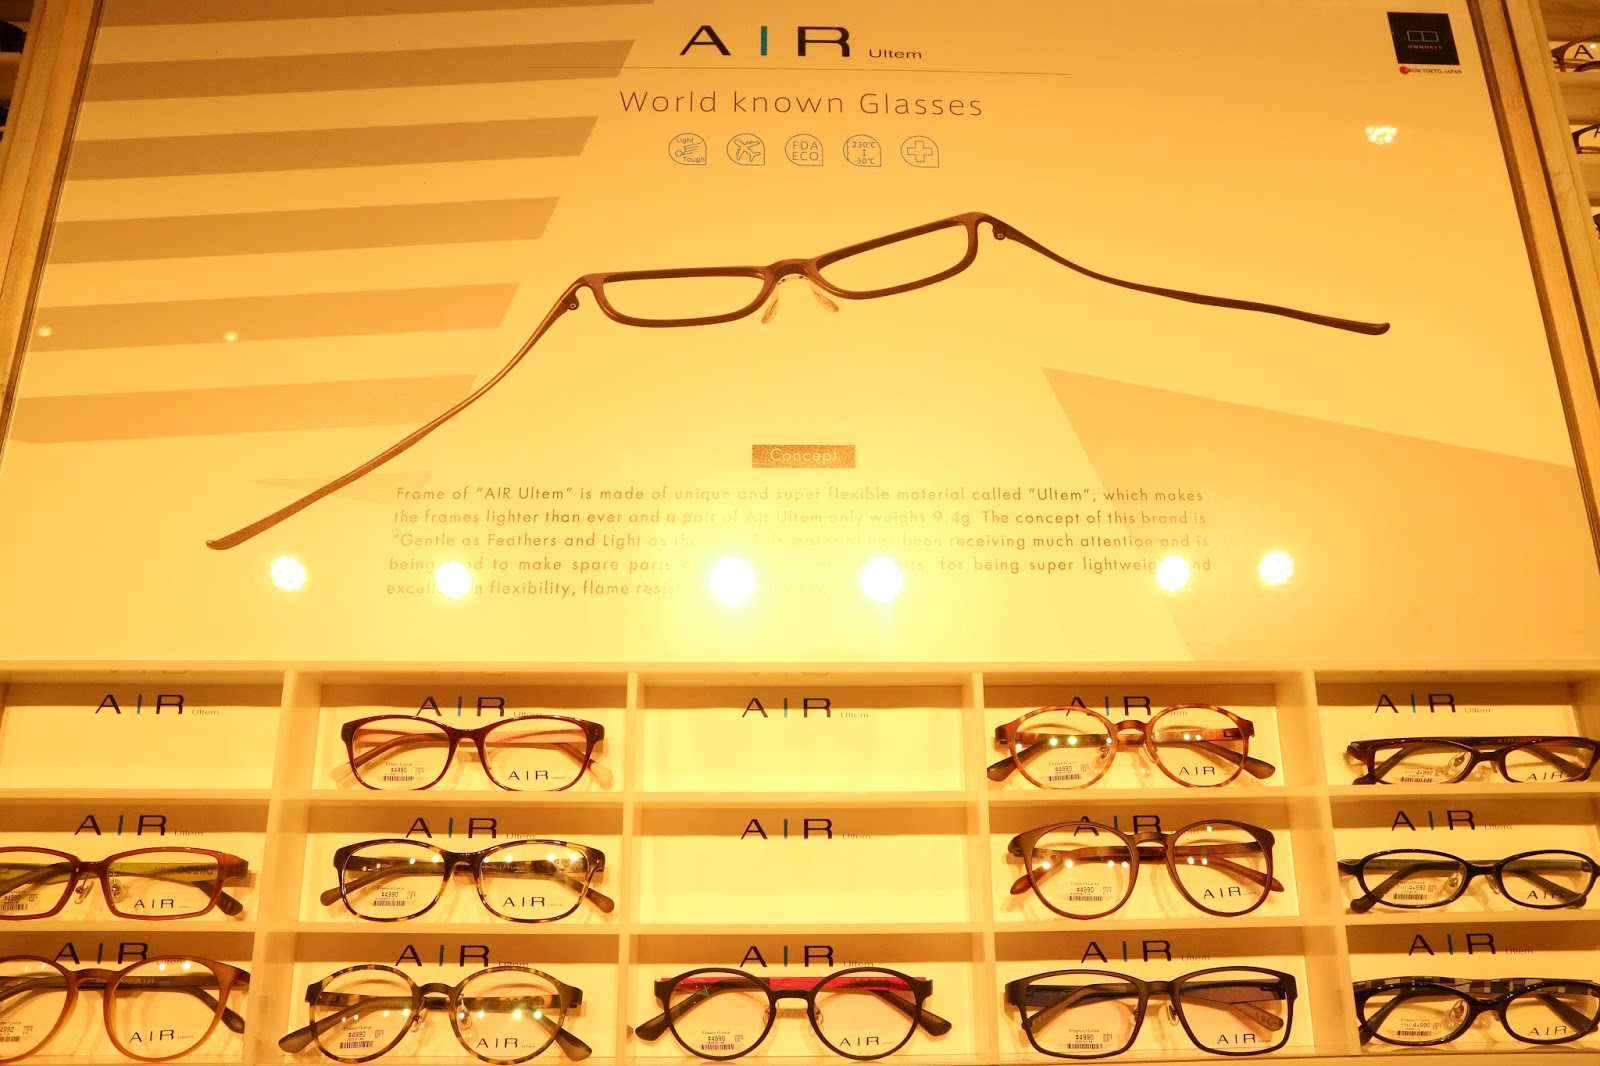 Just frames for glasses - A Frame Weighing Just 9 4 G And Providing Amazing Flexibility Air Ultem Is Soft As Feather And Light As Air It Is Made Of Flexible Incombustible And